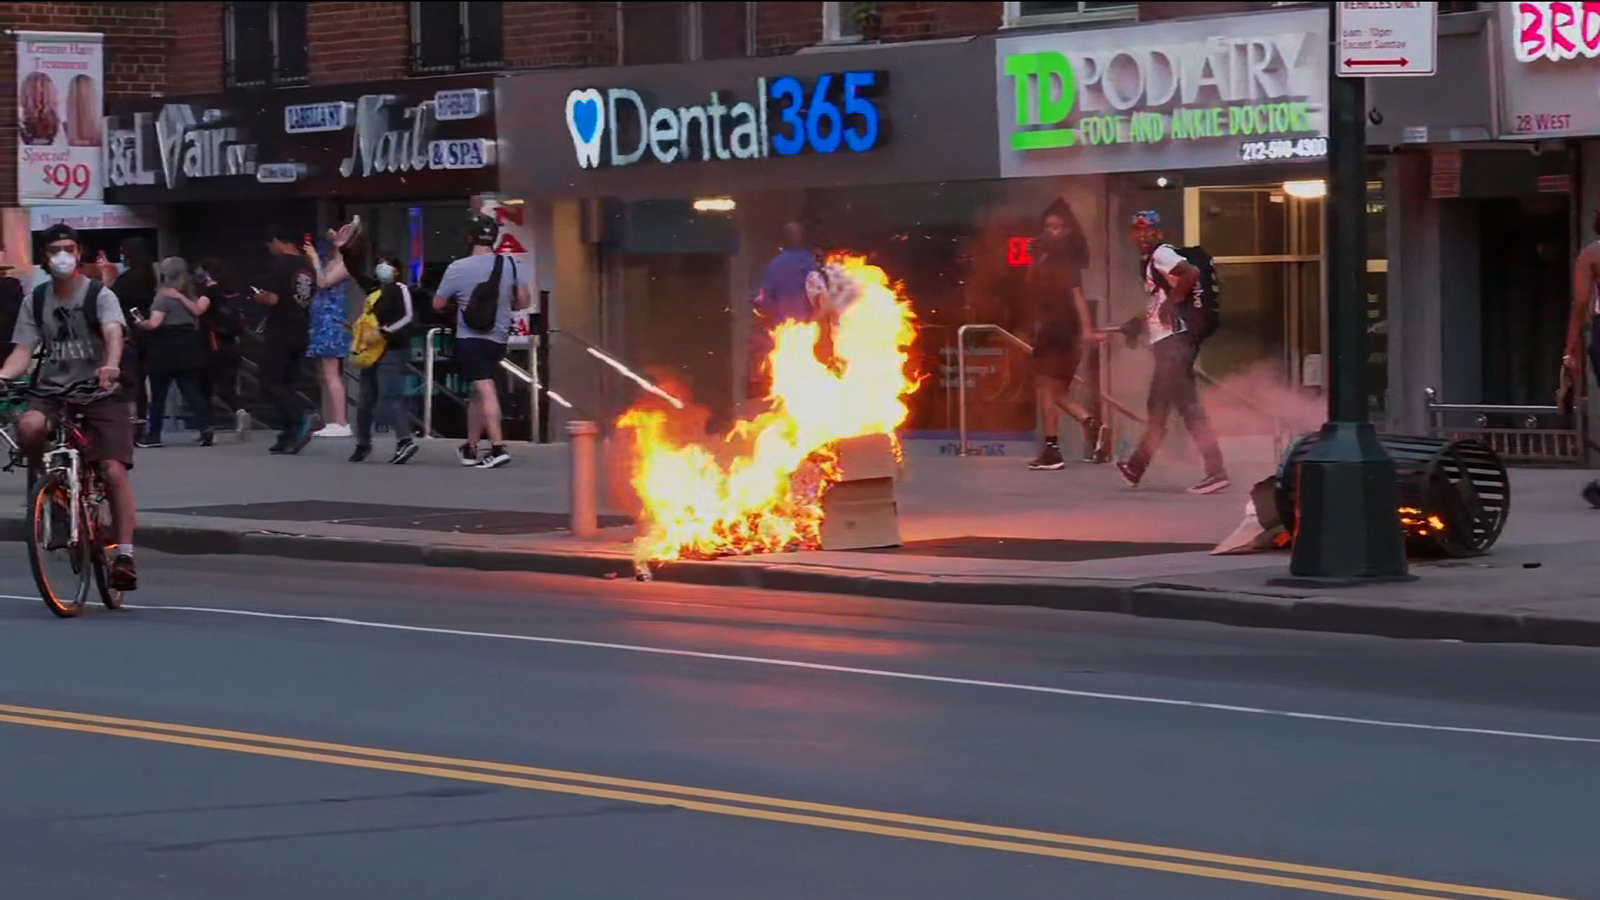 A trash fire ignited by protesters on the street in New York, on May 30.